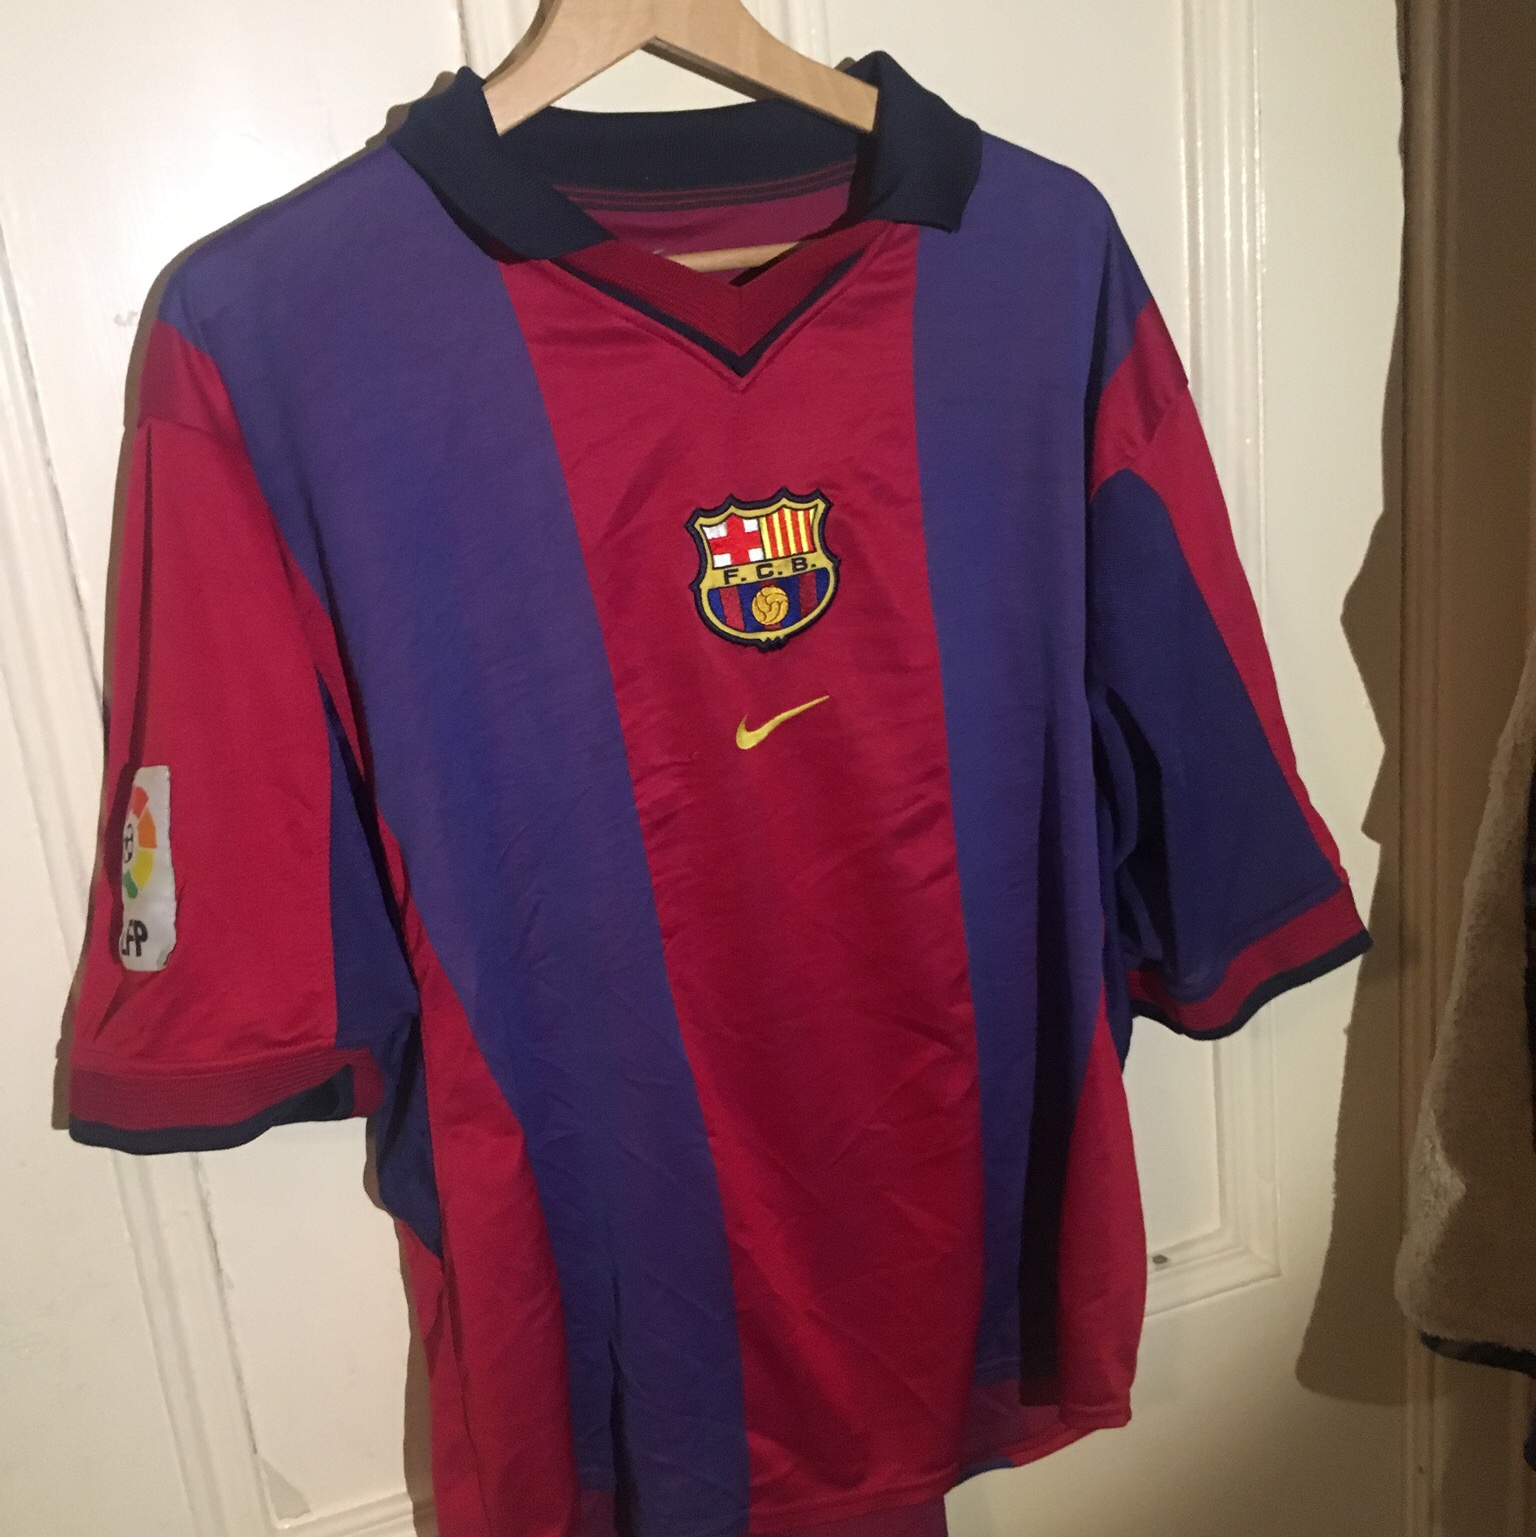 reputable site 5d8fa 70b3f Special edition 2000-01 Vintage Barcelona Home Kit... - Depop